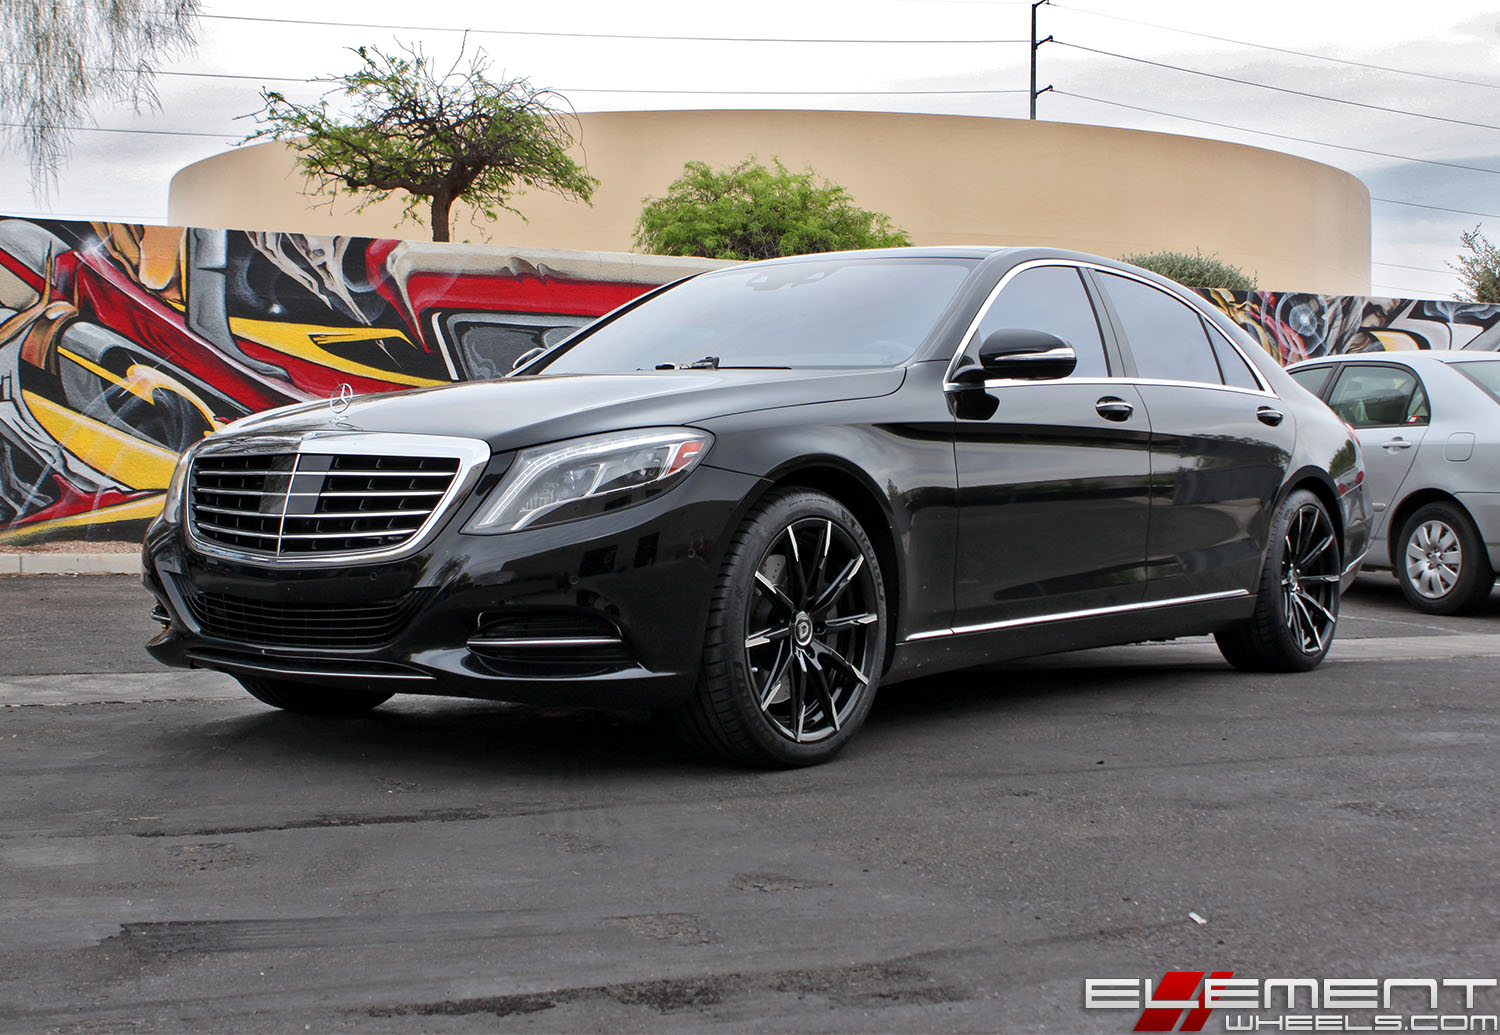 Mercedes S Class Wheels Custom Rim And Tire Packages